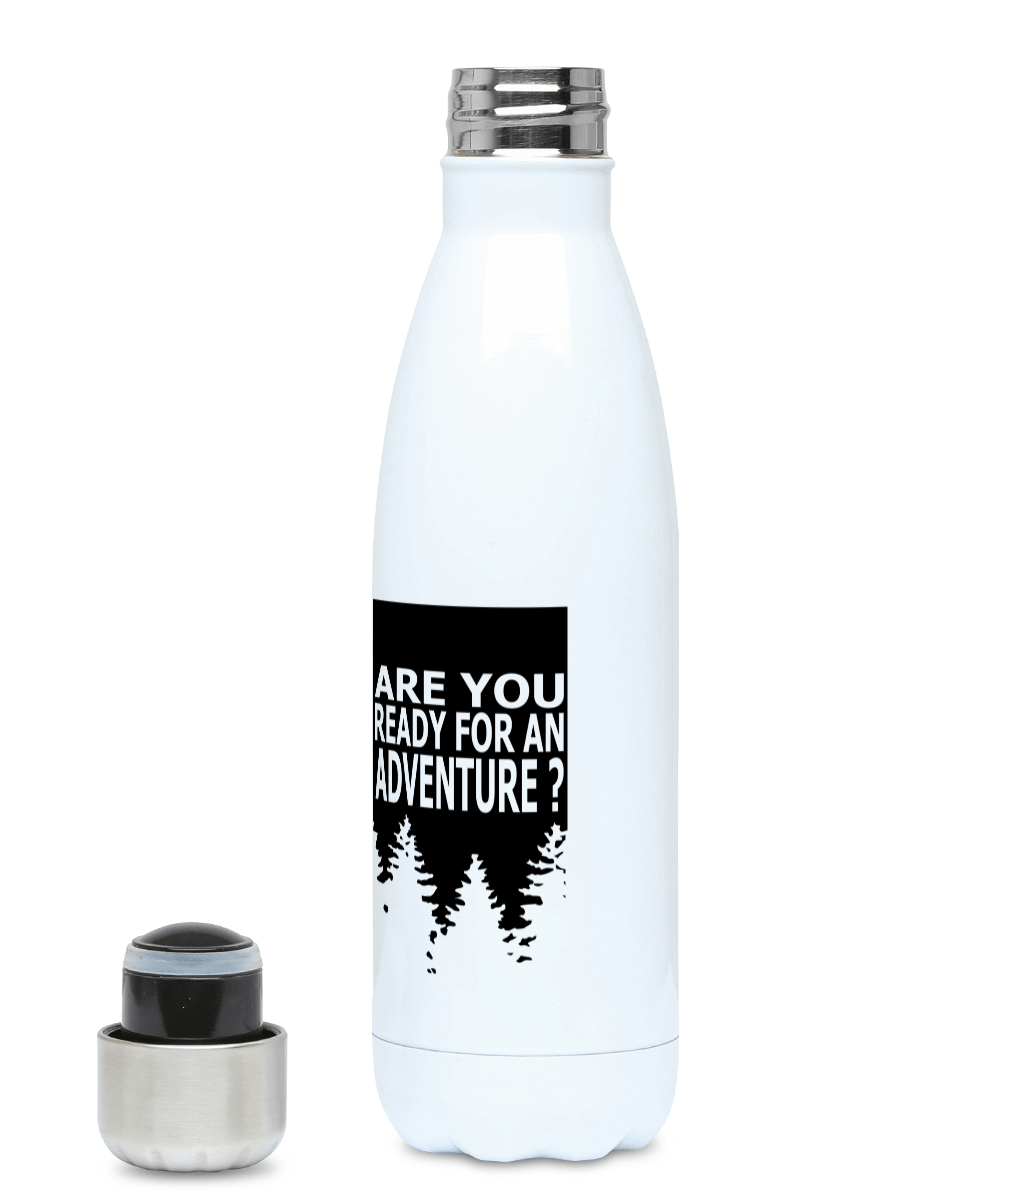 Are You Ready For Adventure - Forest - Plastic Free 500ml Water Bottle, Suggested Products, Pen and Ink Studios Adventure Clothing